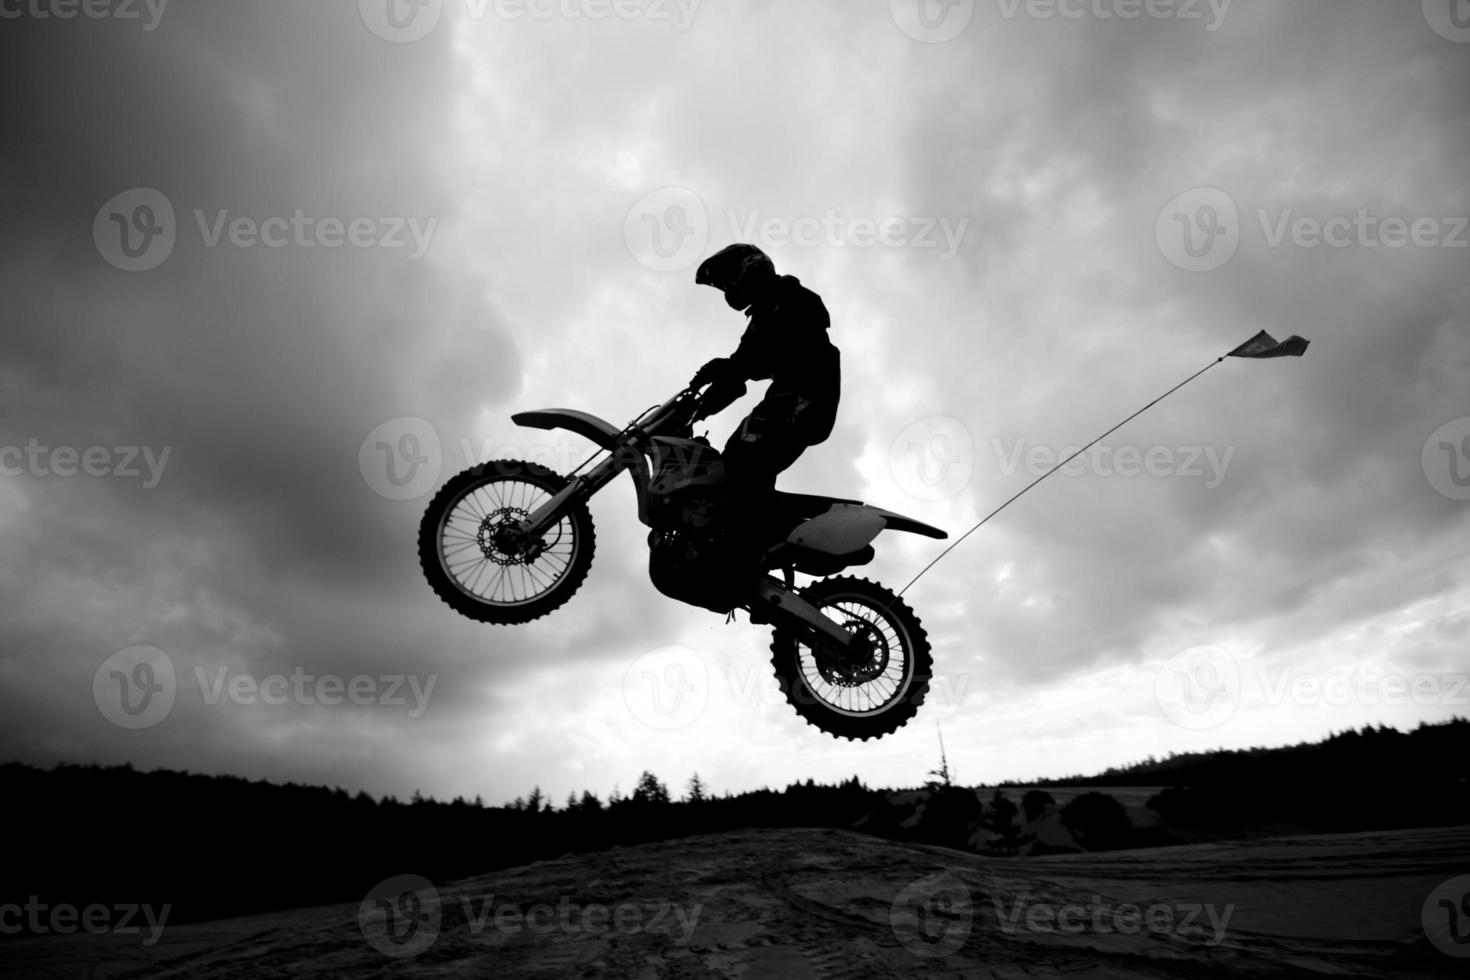 Dirt bike jumping sand dunes - Sihlouette photo